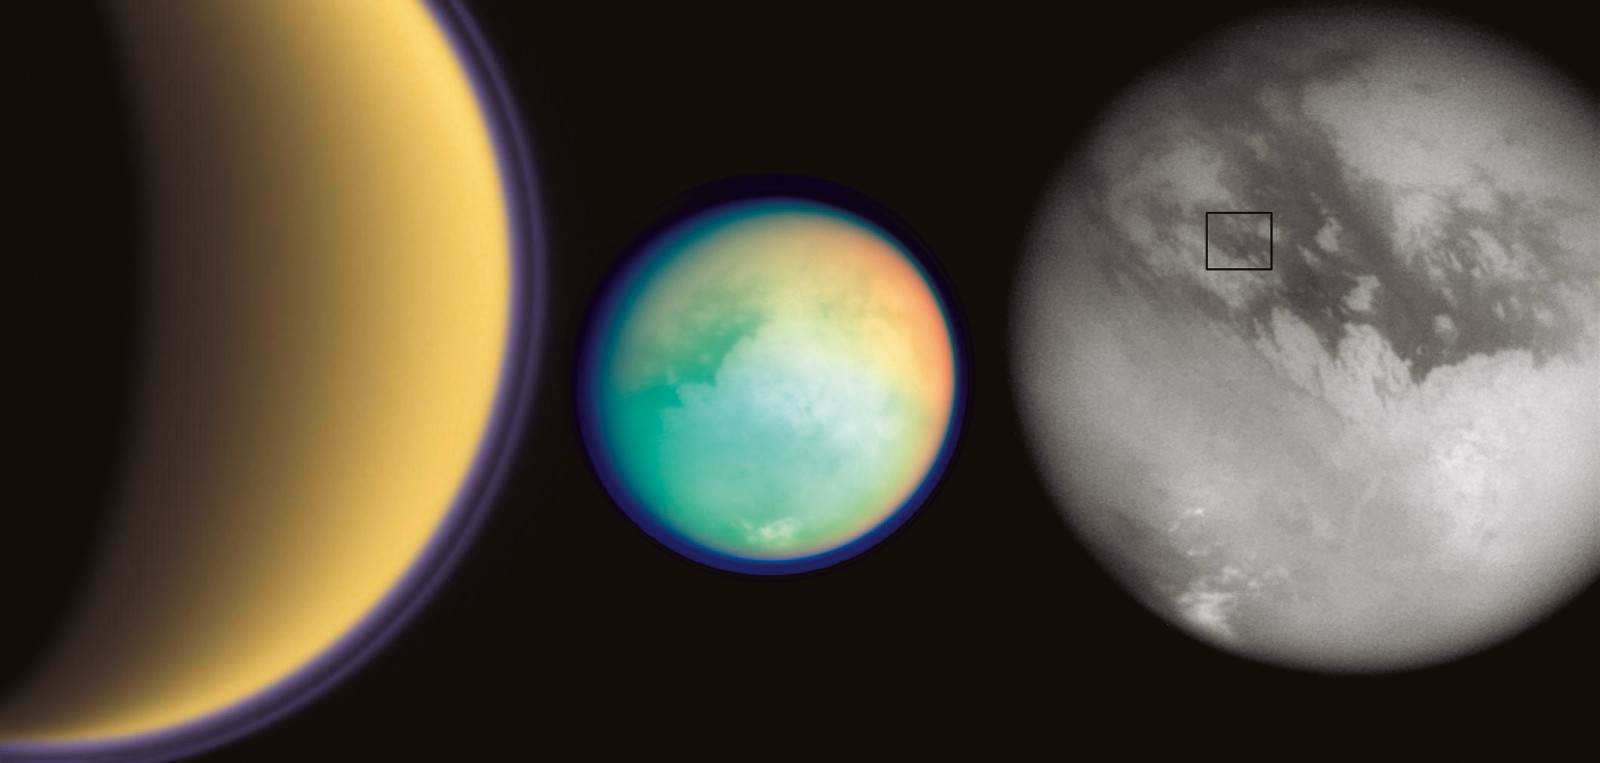 The purple haze of Titan's atmosphere has two layers (left), most clearly visible at the moon's limb. At high altitude—hundreds of kilometres above the surface—solar ultraviolet light breaks down nitrogen and methane molecules. The products react to make complex organic molecules containing carbon and hydrogen, which combine, forming small particles. As these particles collide, they coalesce into heavier particles, which sink, creating the main haze layer in the lower atmosphere. Surface detail becomes apparent through four fi lters (middle). Reds and greens represent infrared wavelengths absorbed by atmospheric methane, while bright and dark surface areas are revealed in a more penetrating infrared band. In this view and another (right), Titan's visual resemblance to Earth is striking. A bright continentsized feature known as Xanadu is clear in both images, and highly refl ective clouds hover over the South Pole. The box imposed on Titan shows the proposed landing site for the probe Huygens.